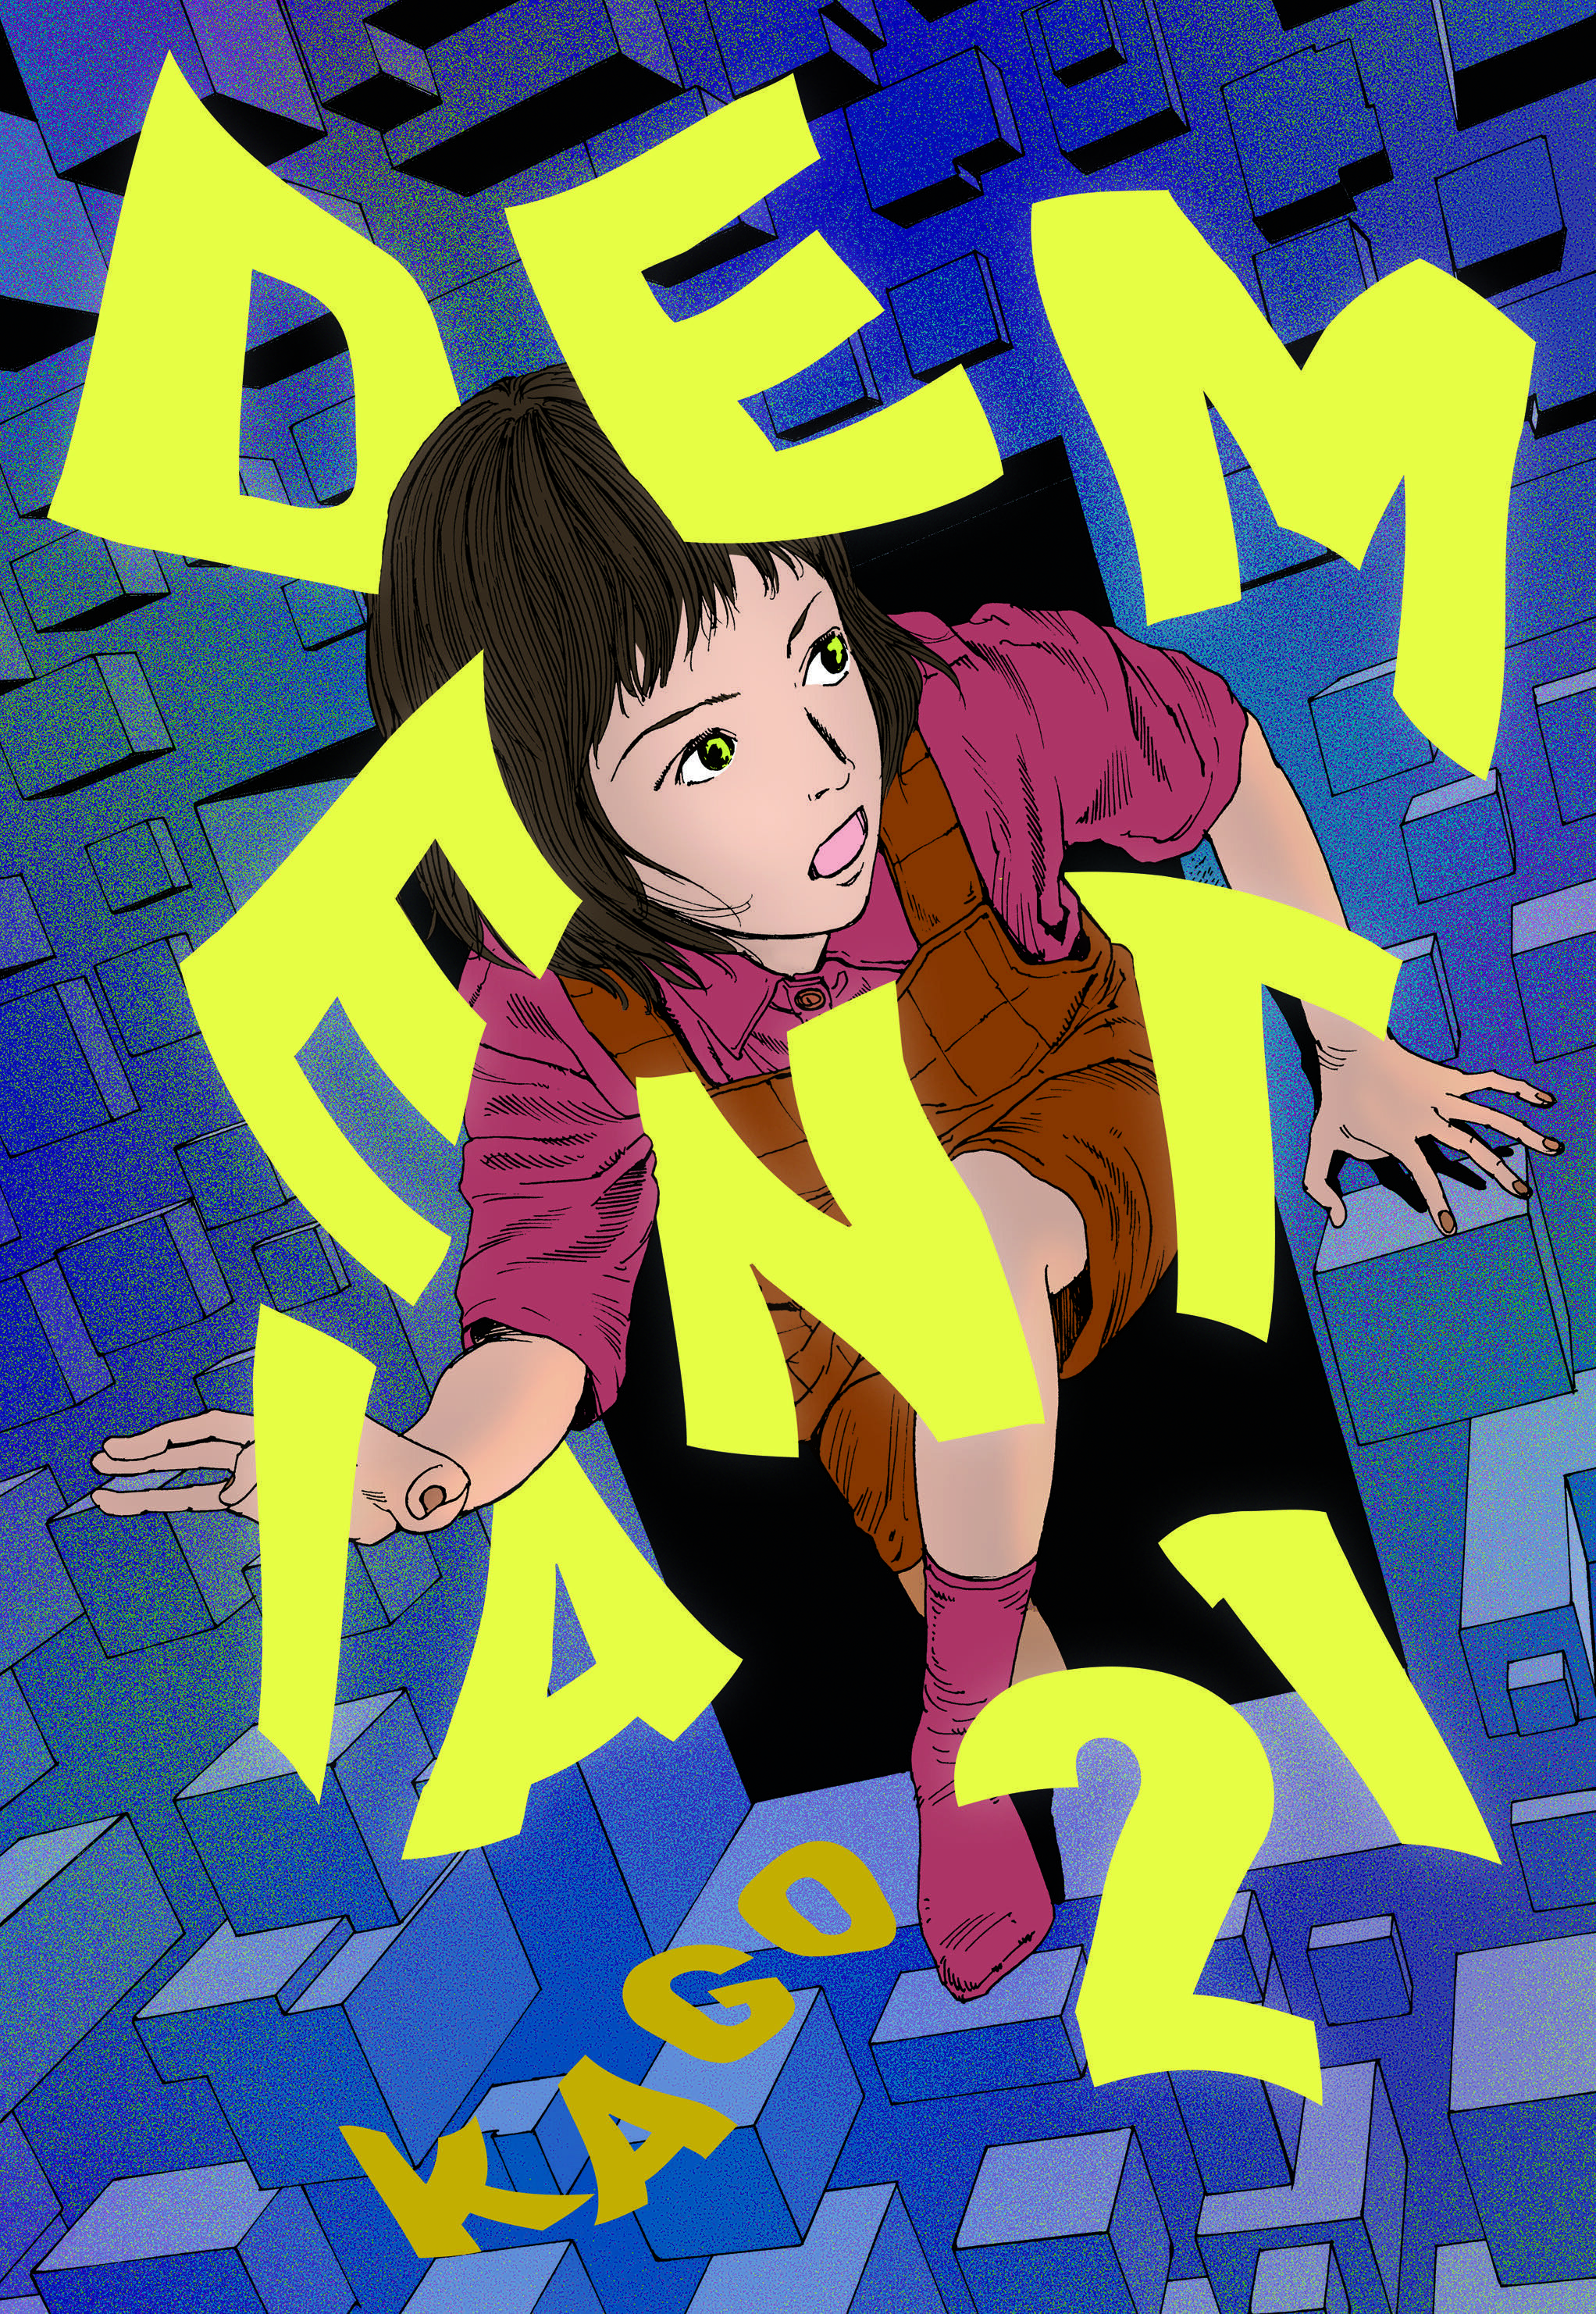 Dementia 21  is   a horror graphic narrative by Shintaro Kago, published by Fantagraphics Books